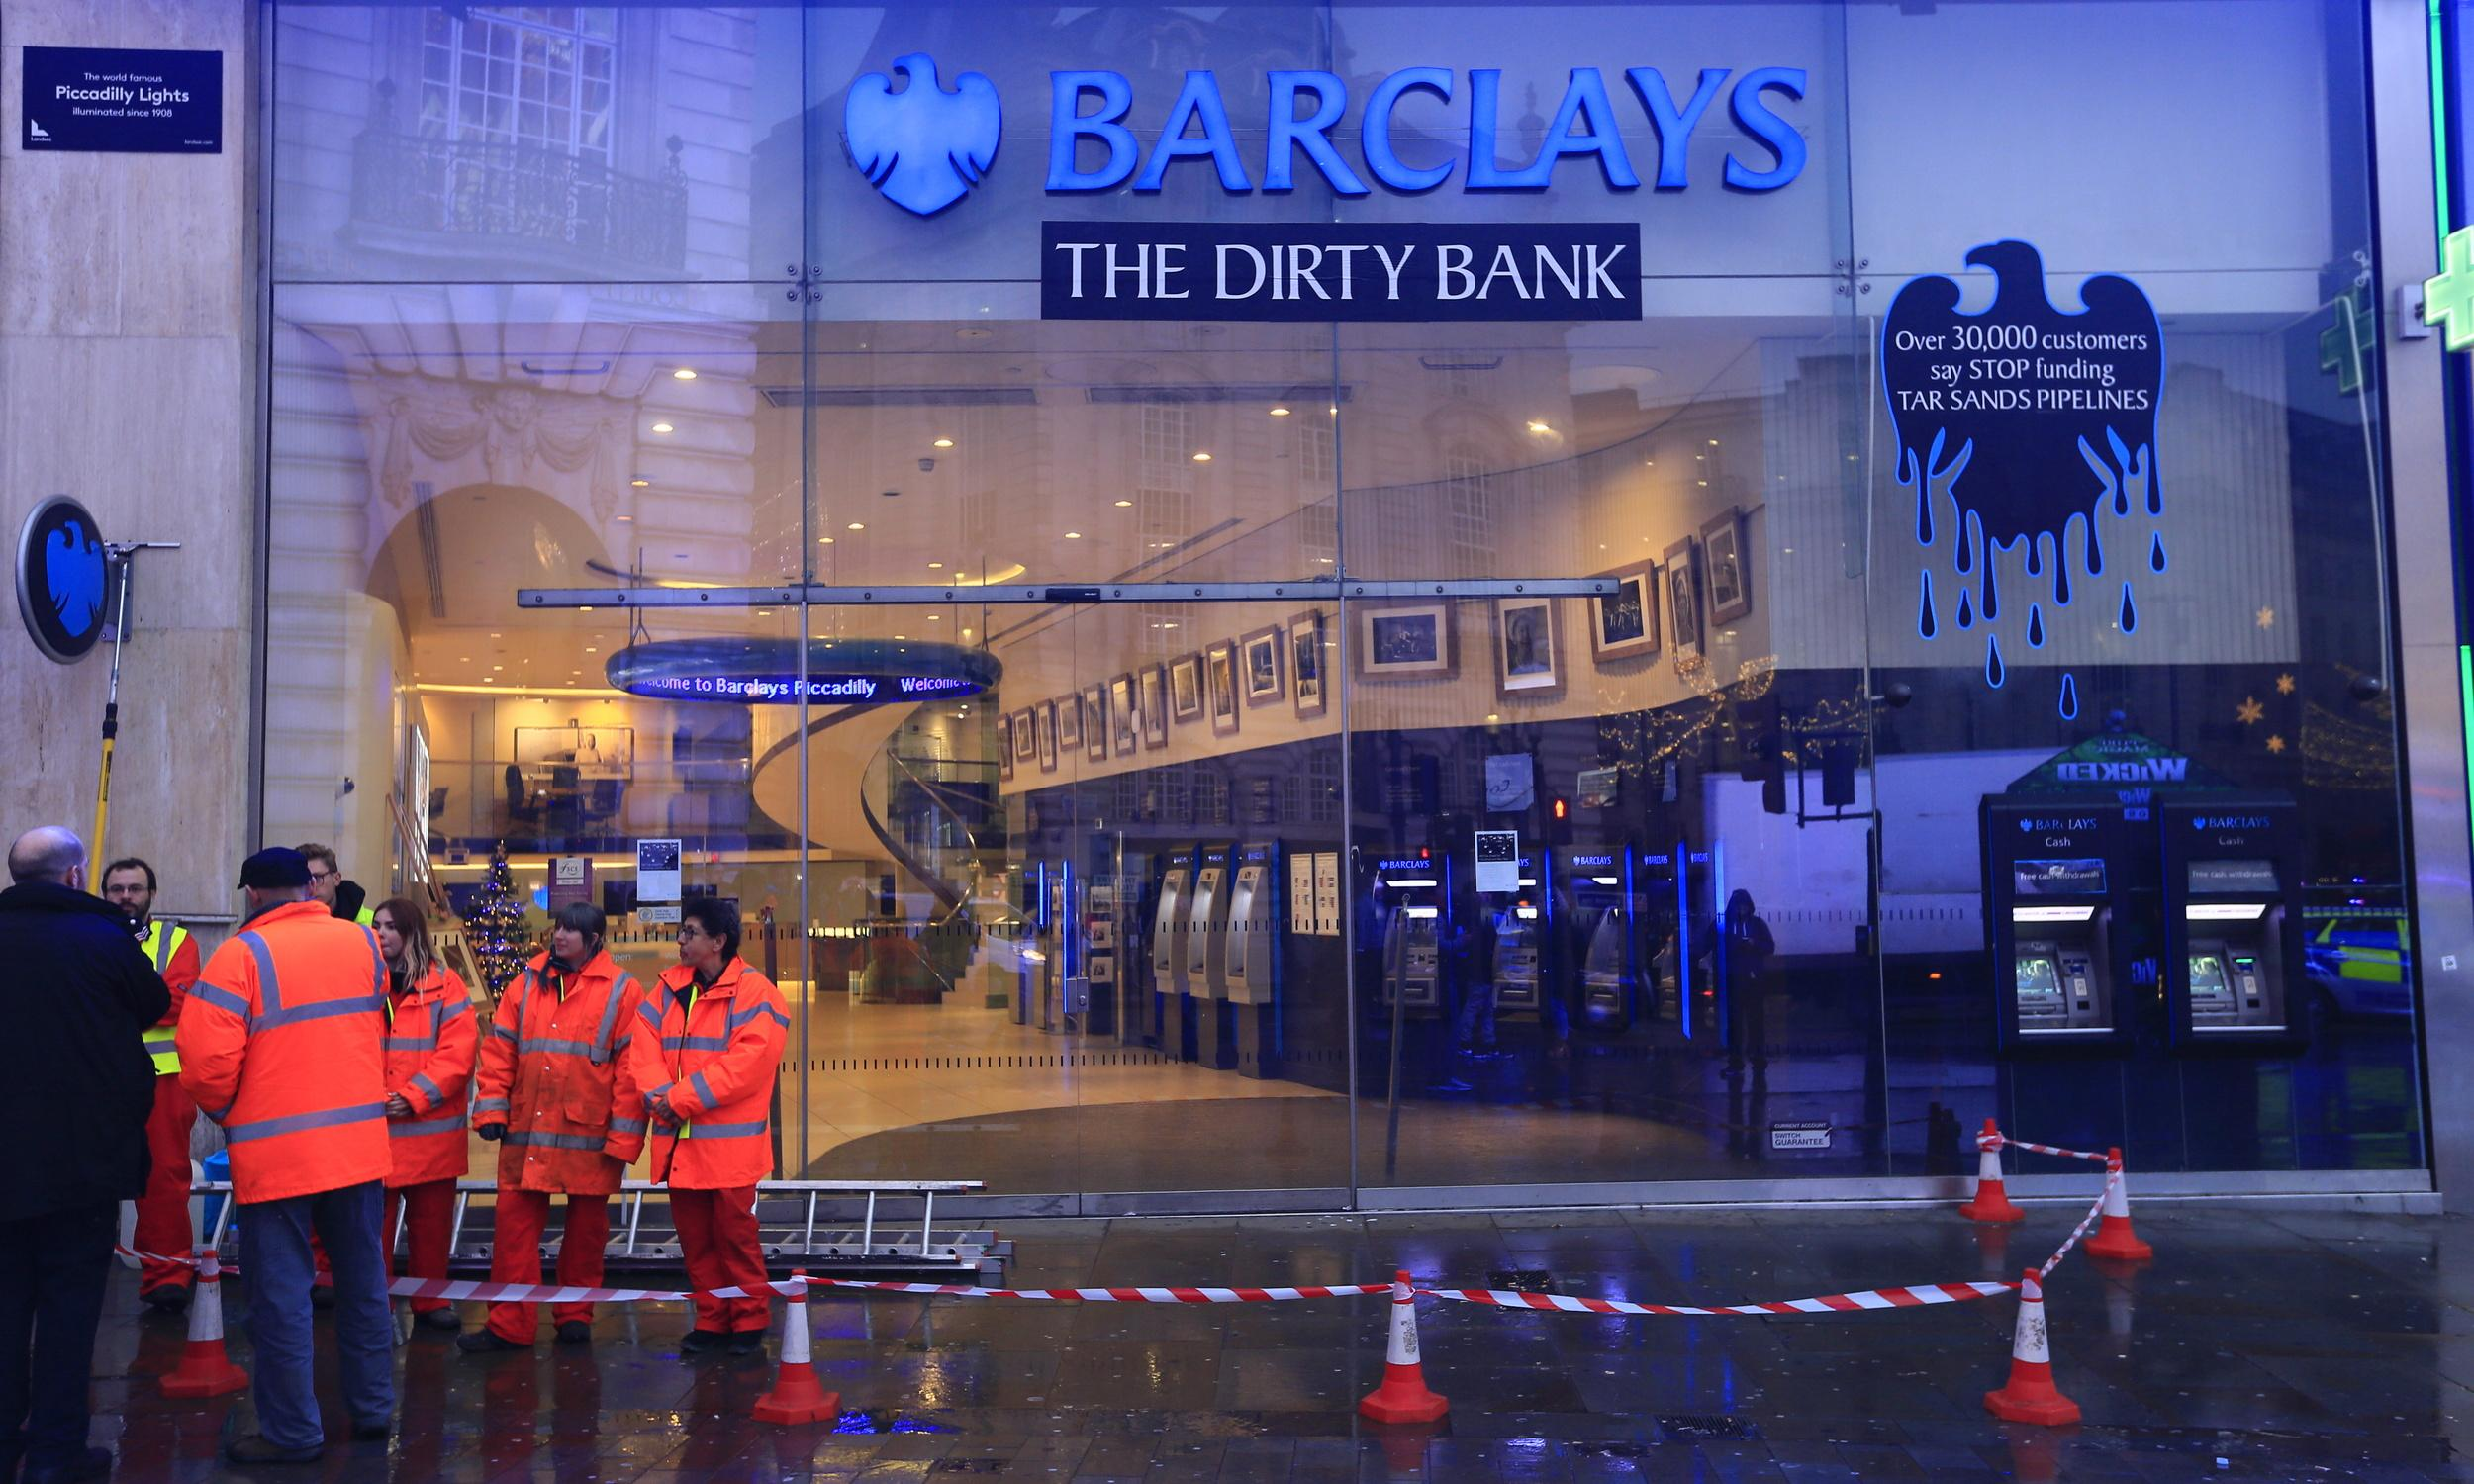 Barclays customers in switch threat over tar sands investment